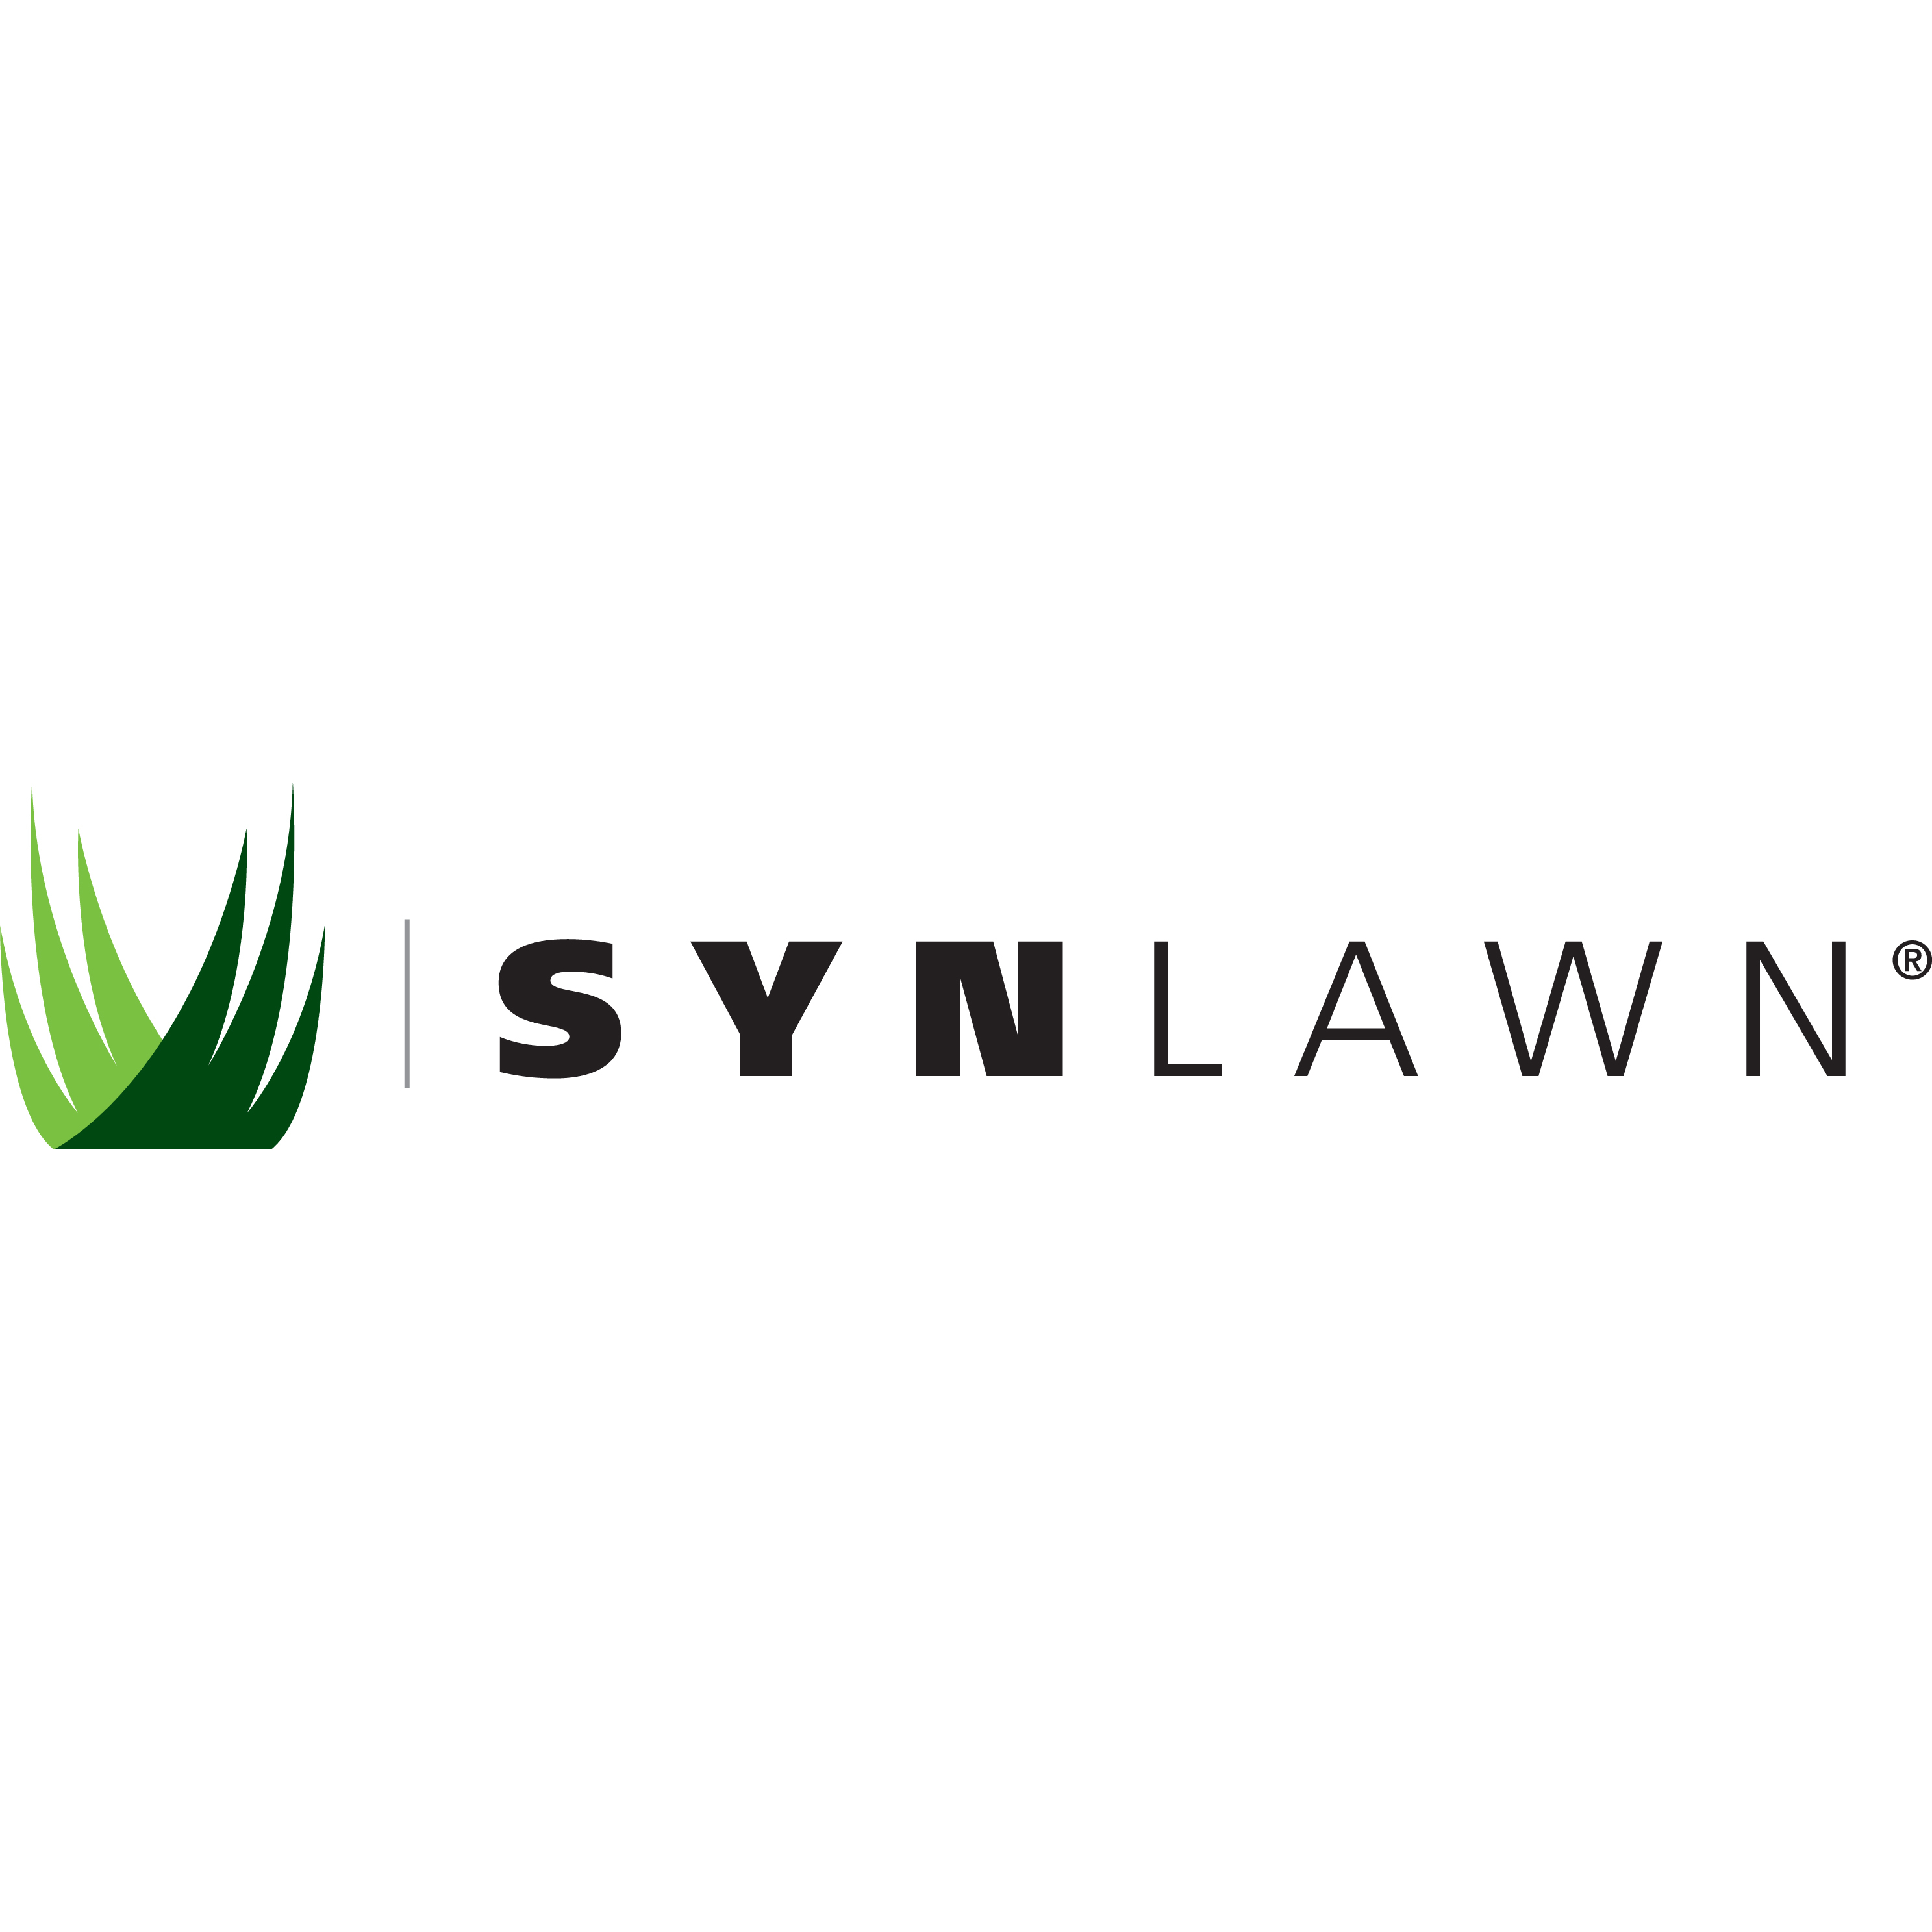 SYNLawn of Reno - Reno, NV - Lawn Care & Grounds Maintenance